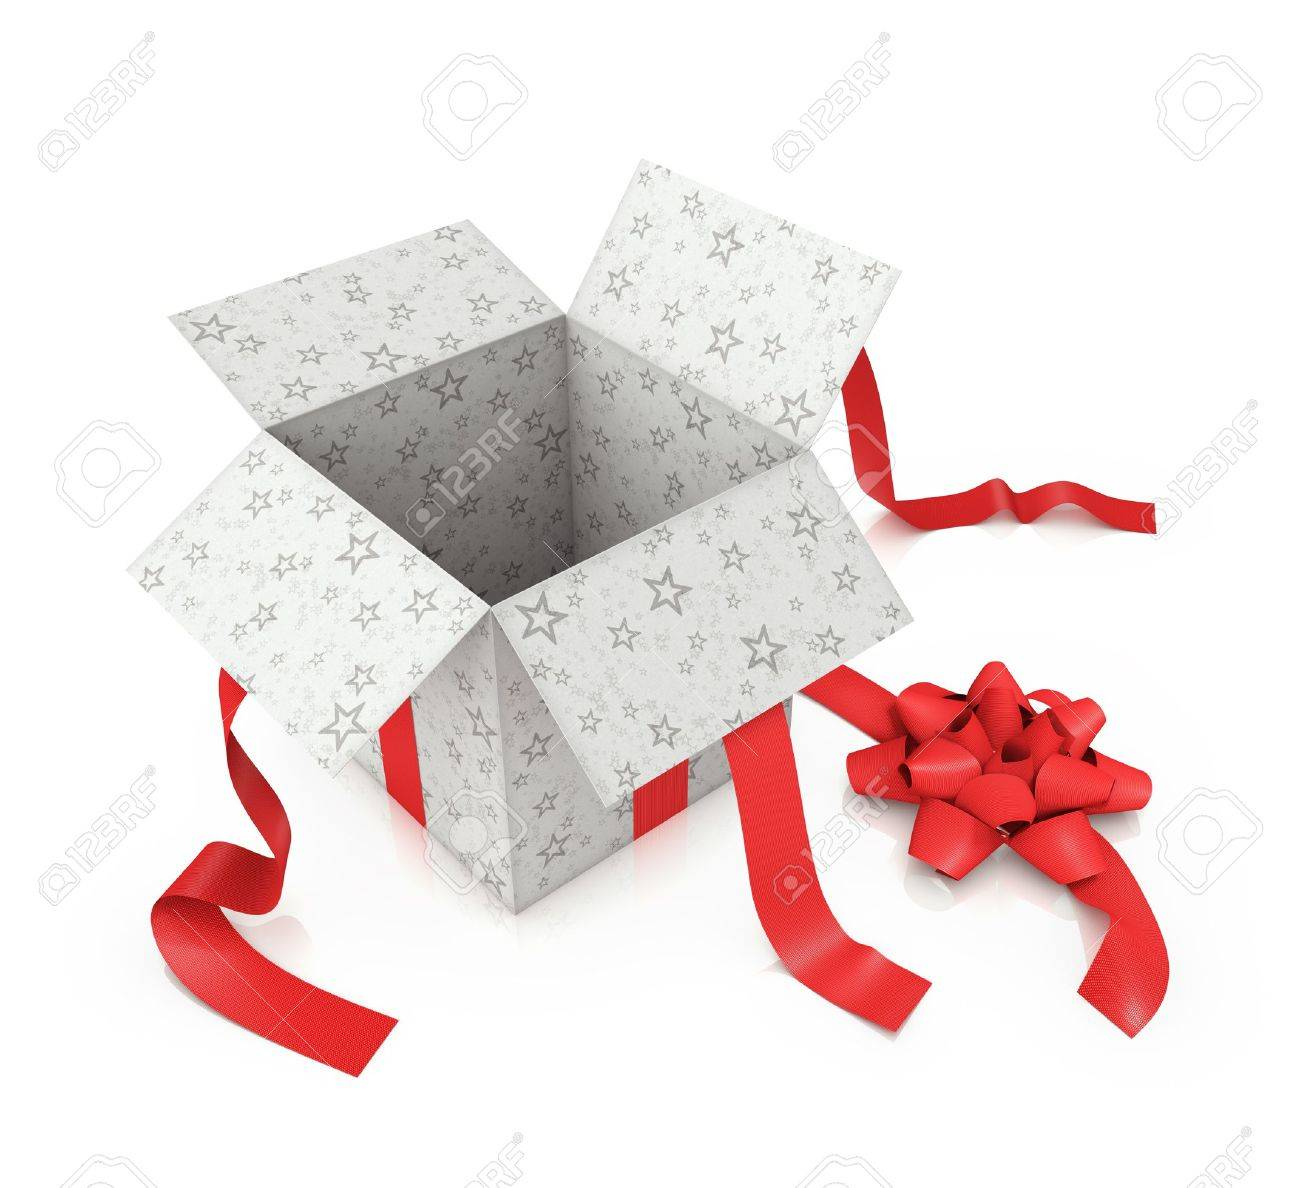 Open gift with star prints and textured red ribbon. - 11329572